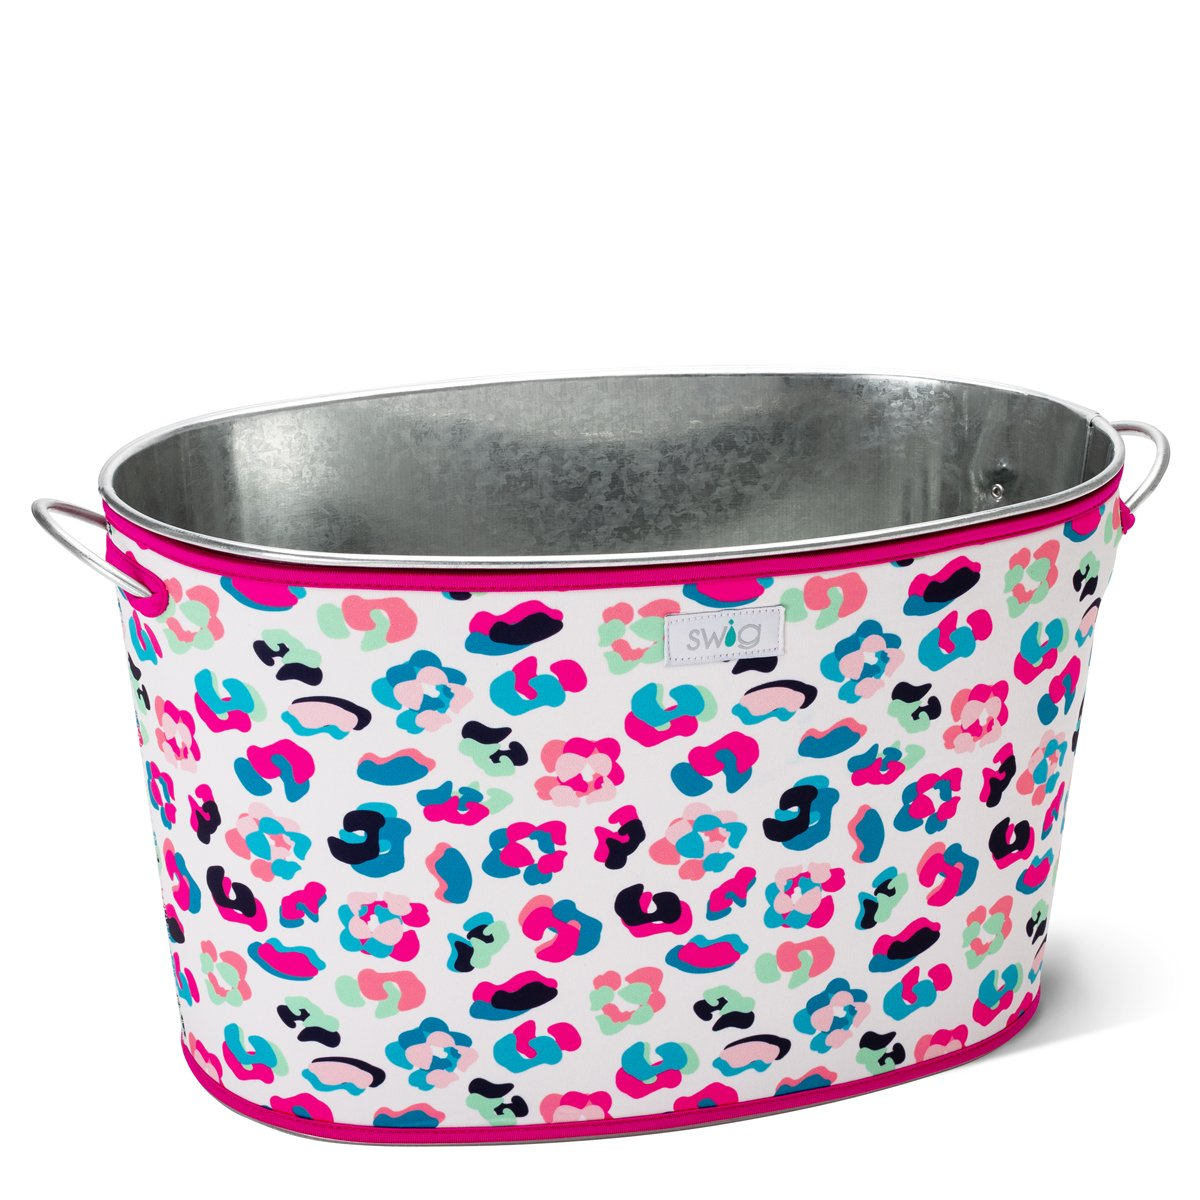 Party Animal Party Tub